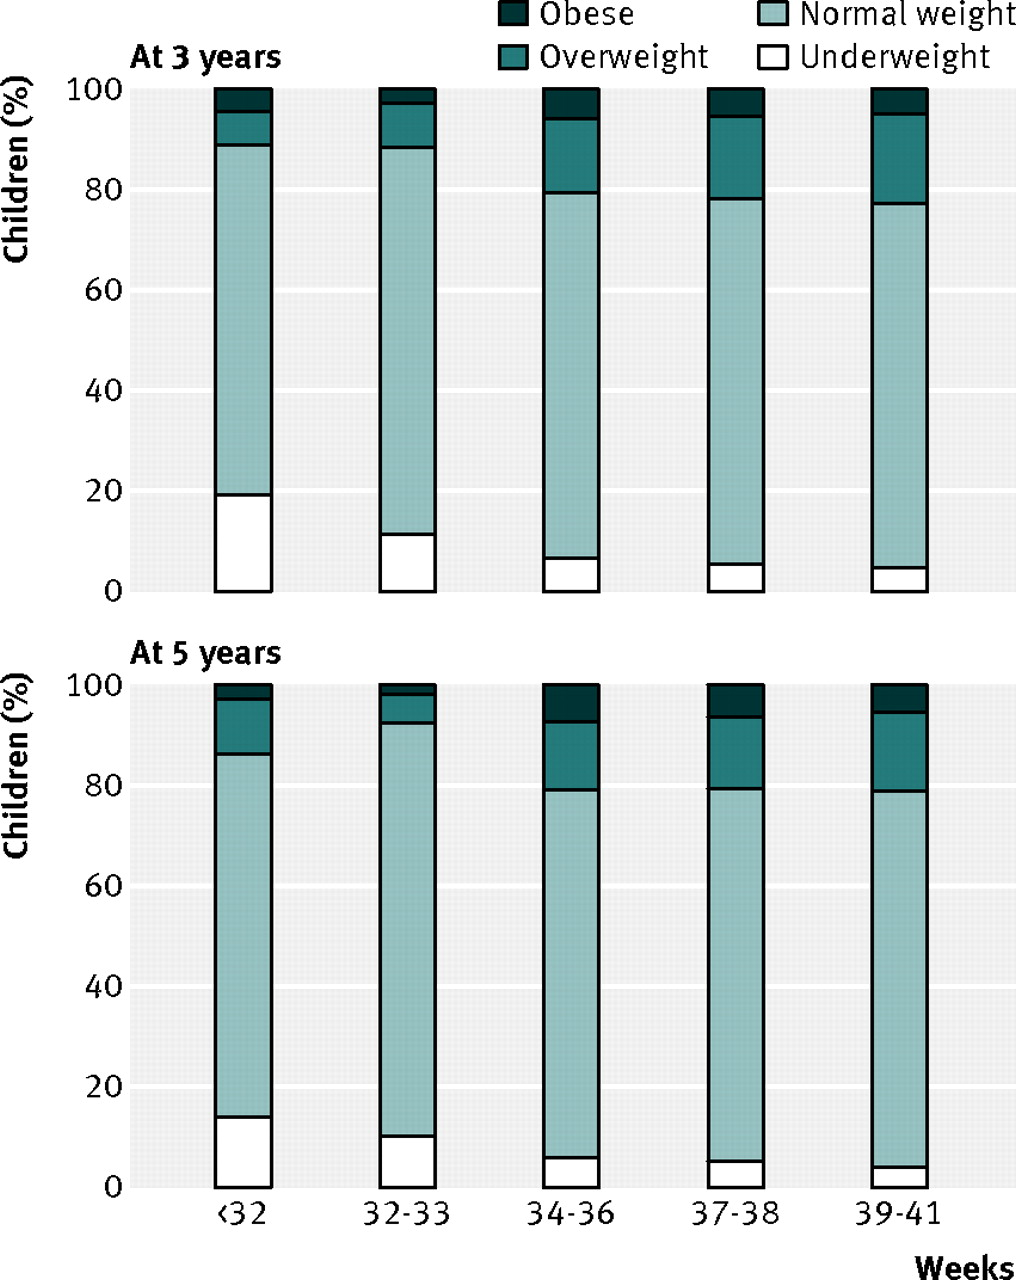 Effects of gestational age at birth on health outcomes at 3 and 5 fig 2 classification of weight status according to body mass index at 3 and 5 years for gestational age groups nvjuhfo Images